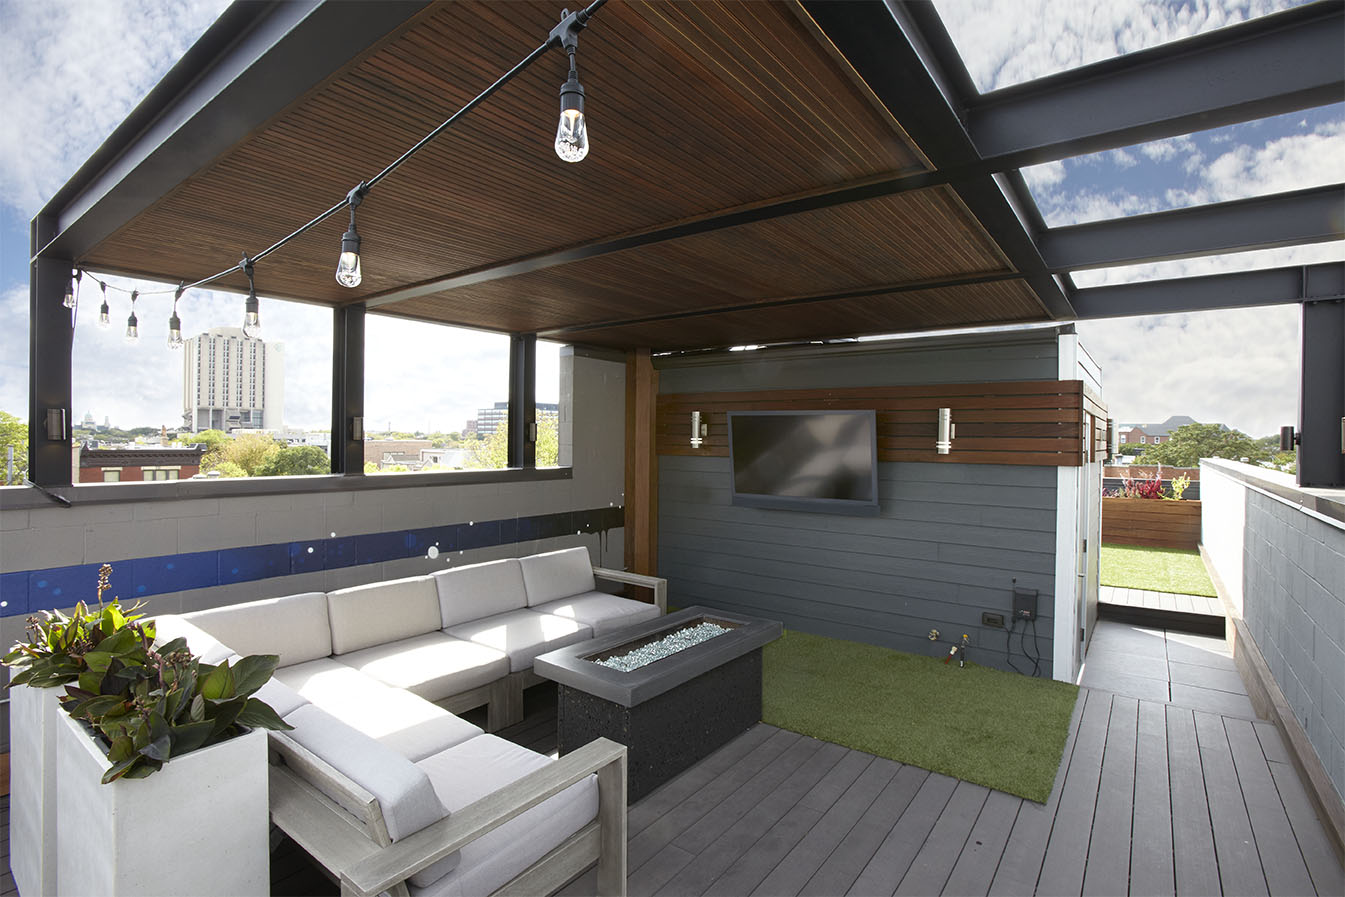 Steel shade structure chicago roof deck garden for Steel shade structure design